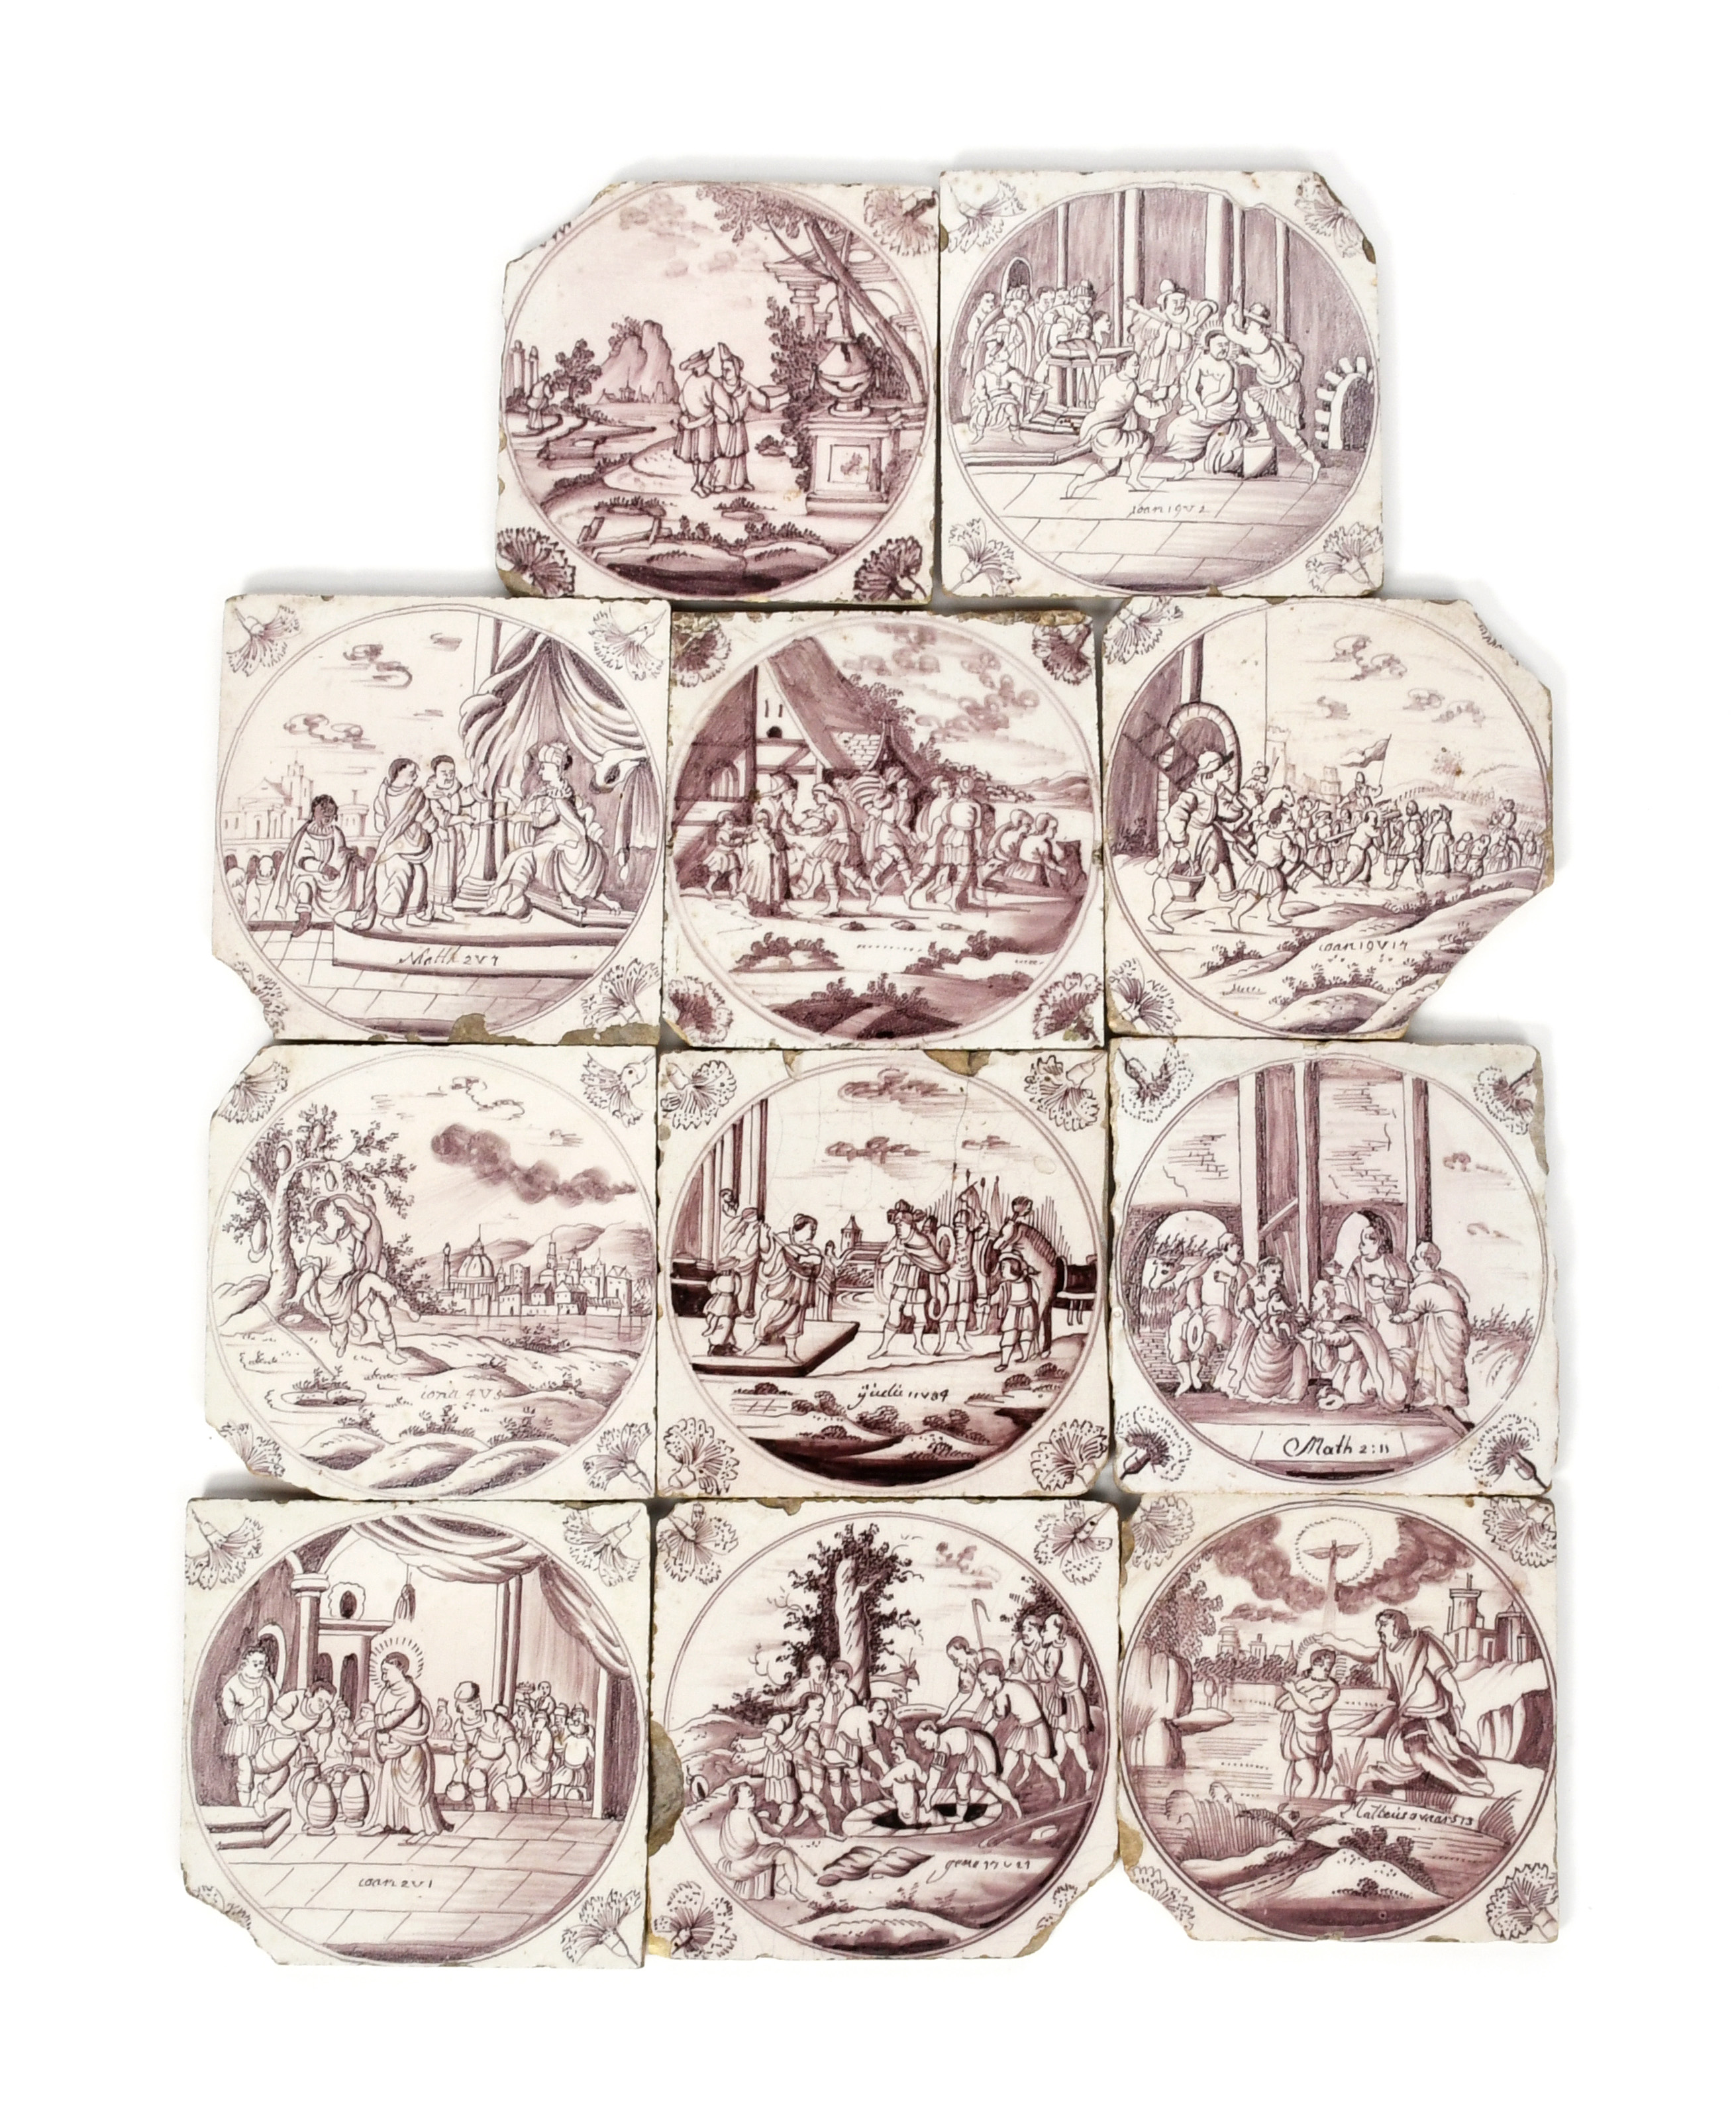 Eleven Delft Biblical tiles mid 18th century, painted in manganese with varying scenes from the